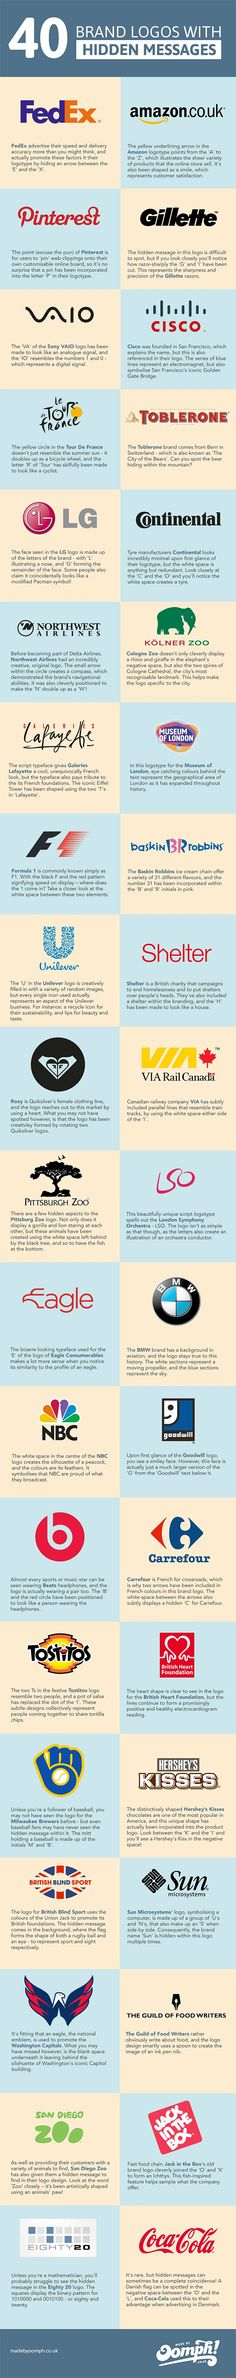 40 Creative Ways to Incorporate a Hidden Message in Your Logo #LogoDesign #Infographic